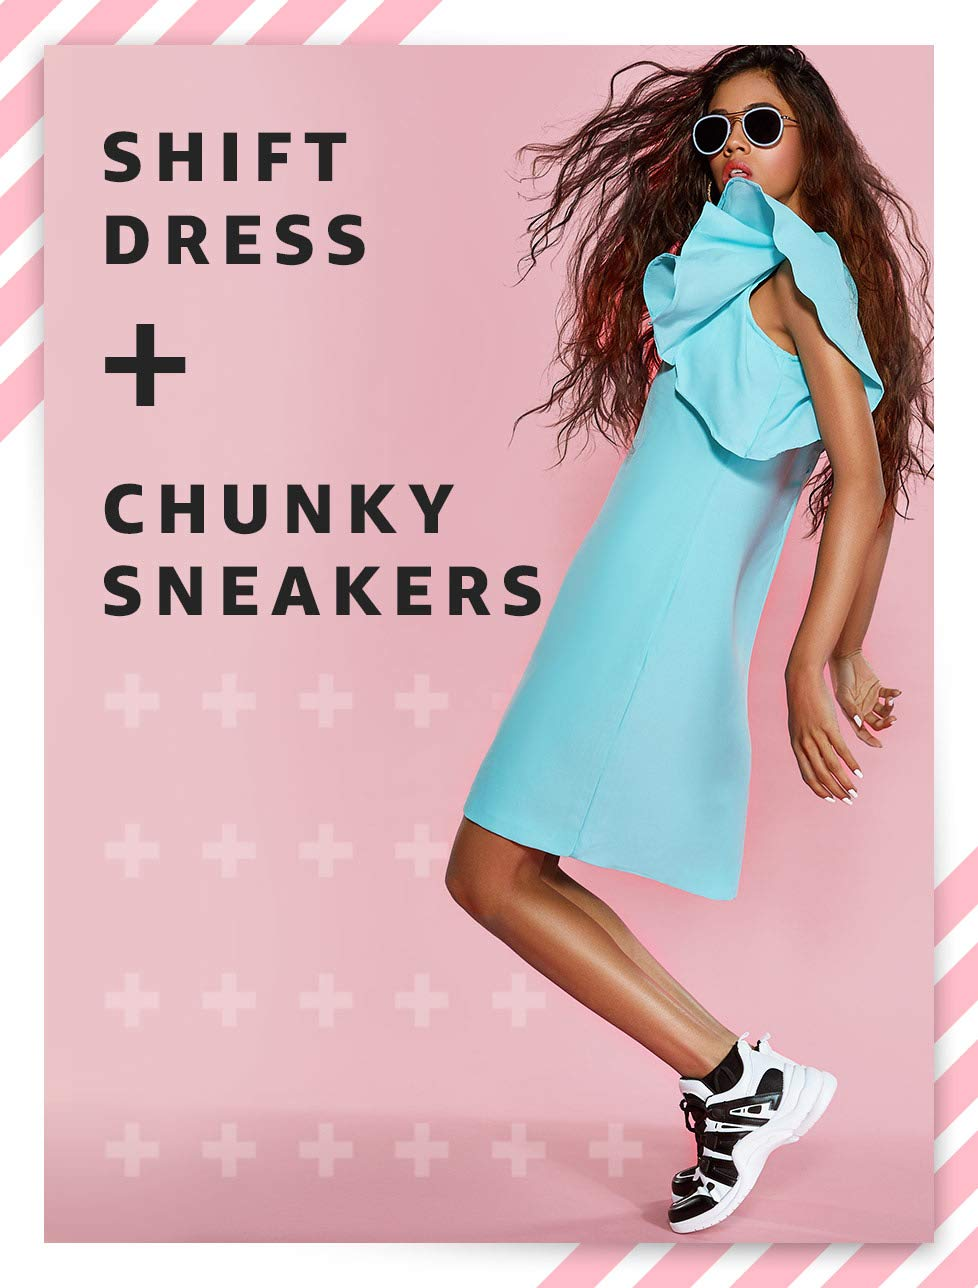 Shift Dress + Chunky Sneakers